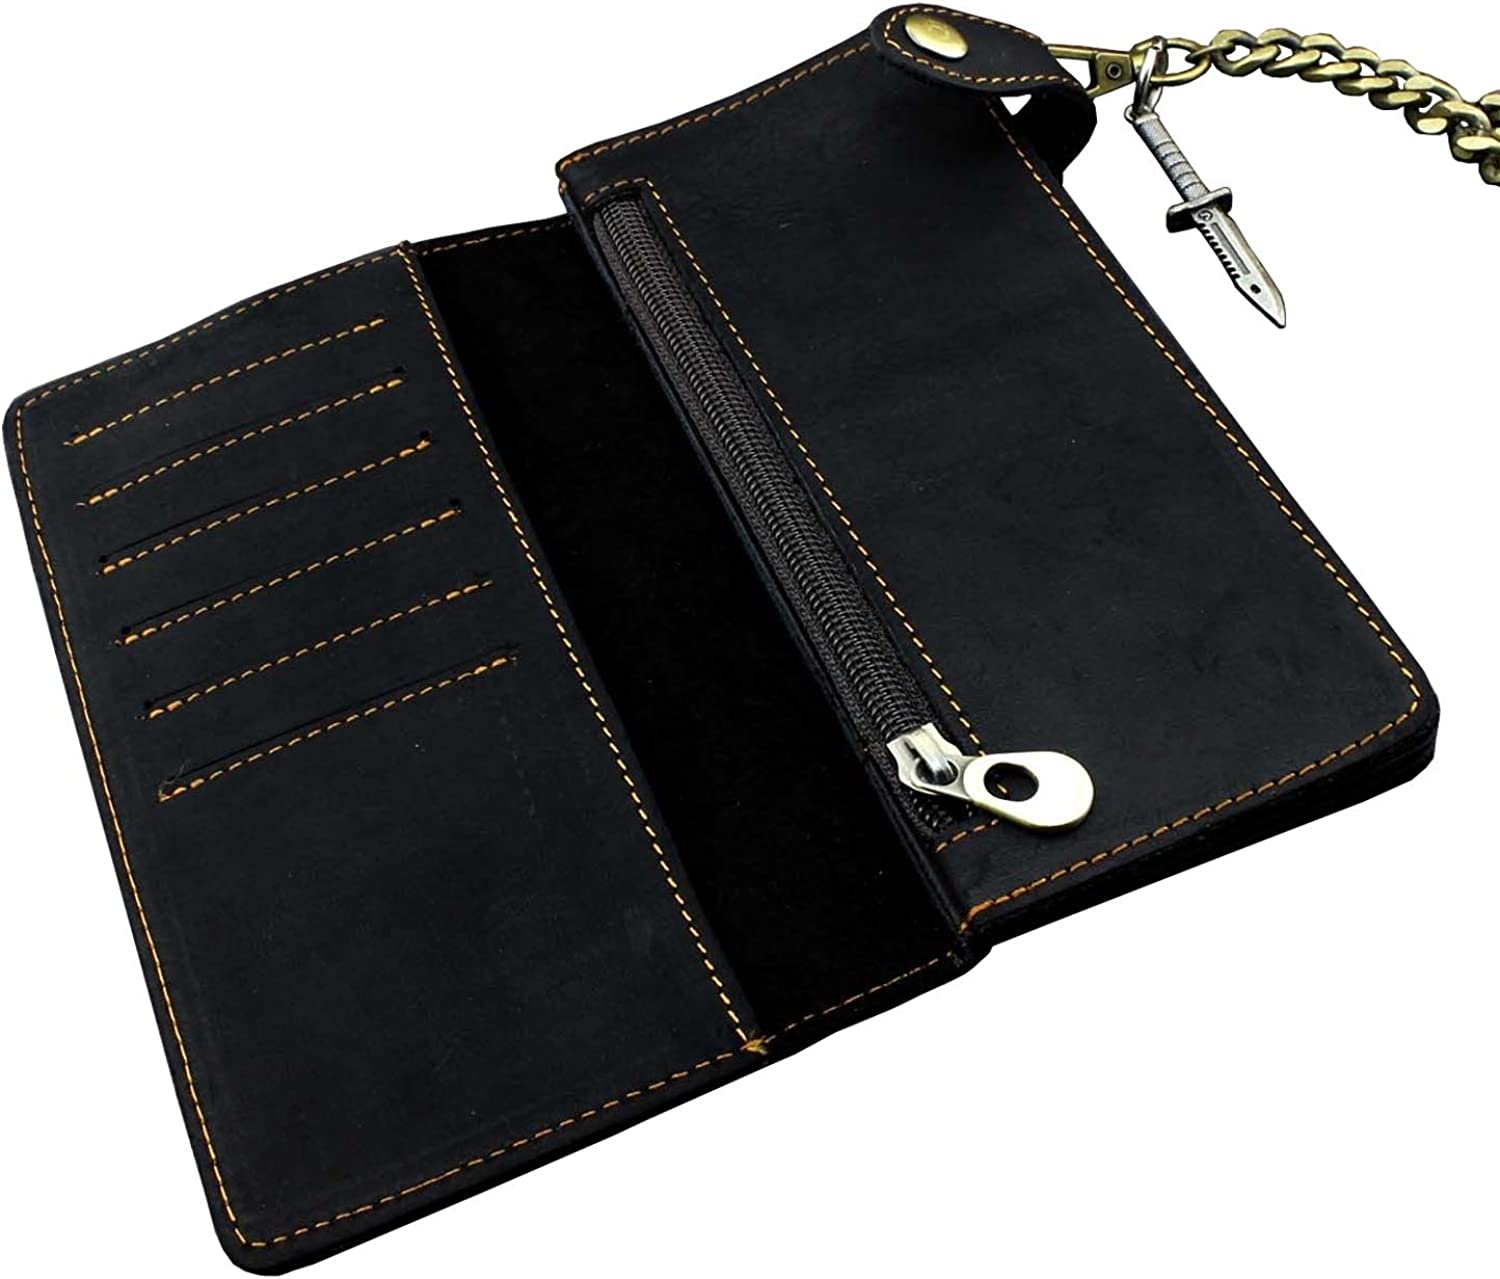 Mens Vintage Black Leather Biker Wallet Purse With Brass Cuban Link Key Chain